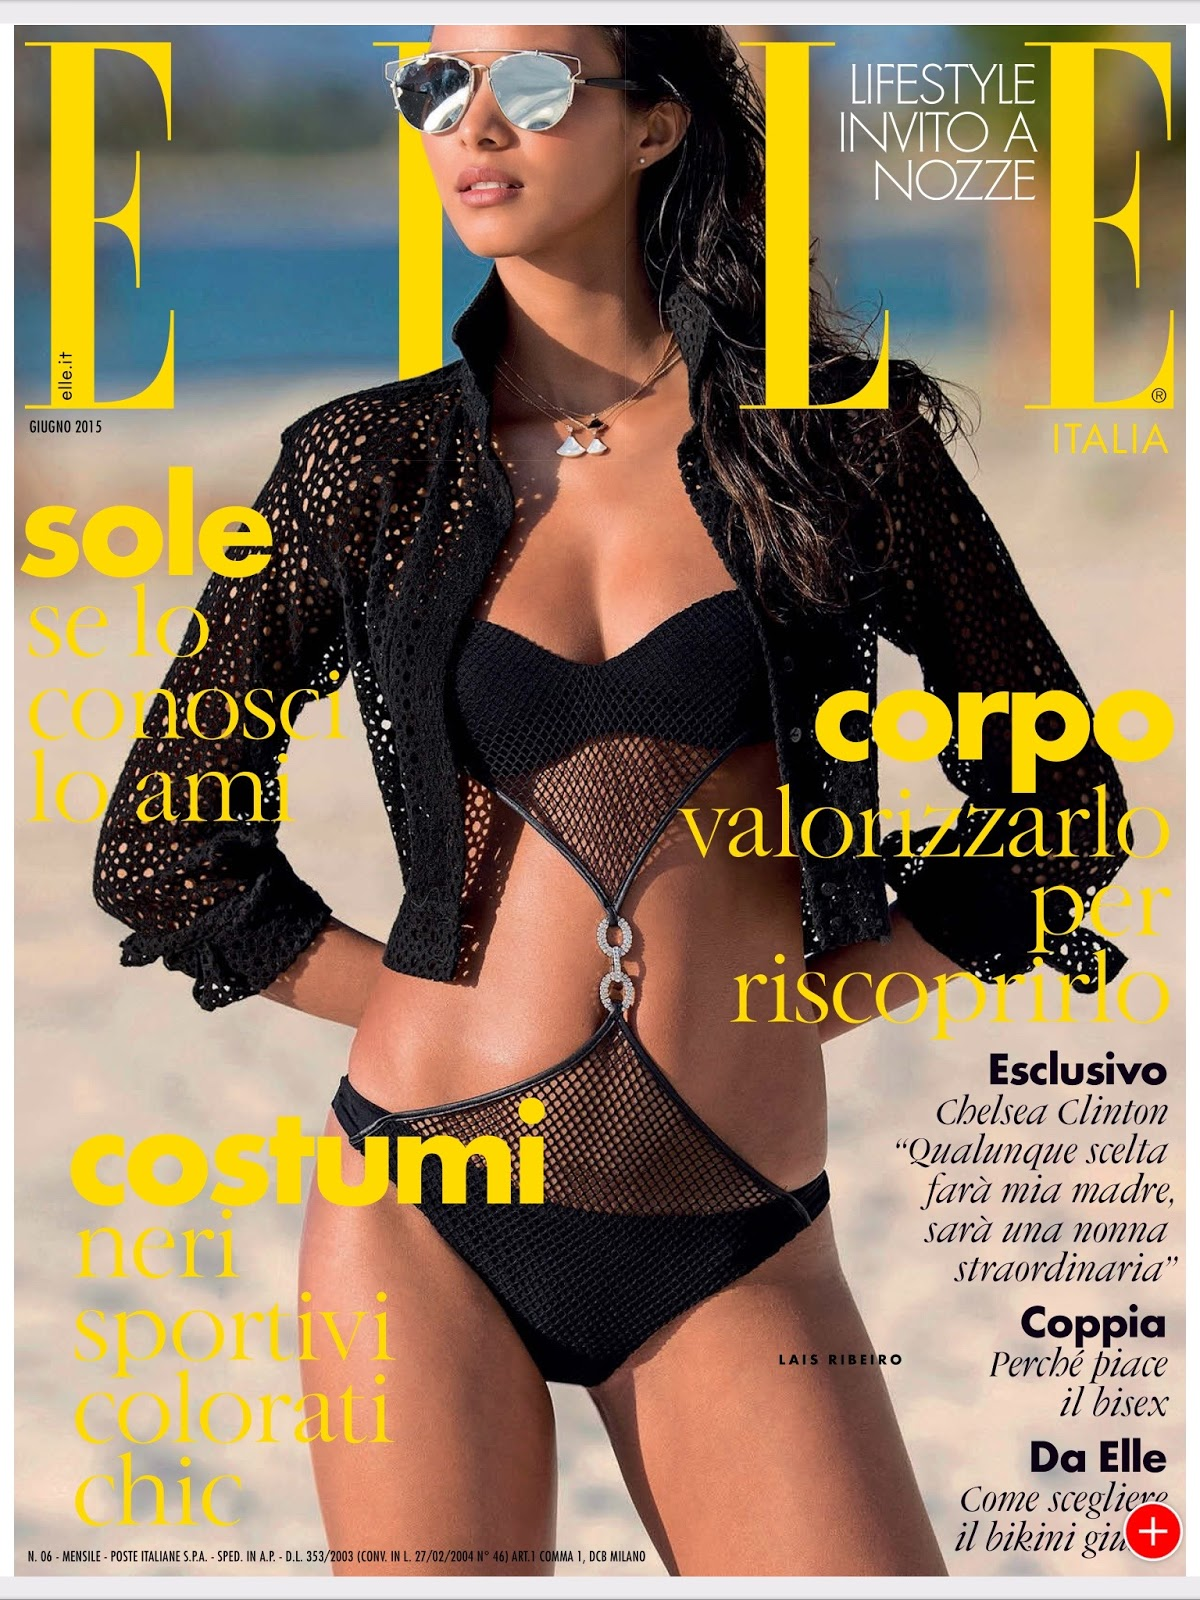 Lais Ribeiro by Hans Feurer for Elle Italia, June 2015